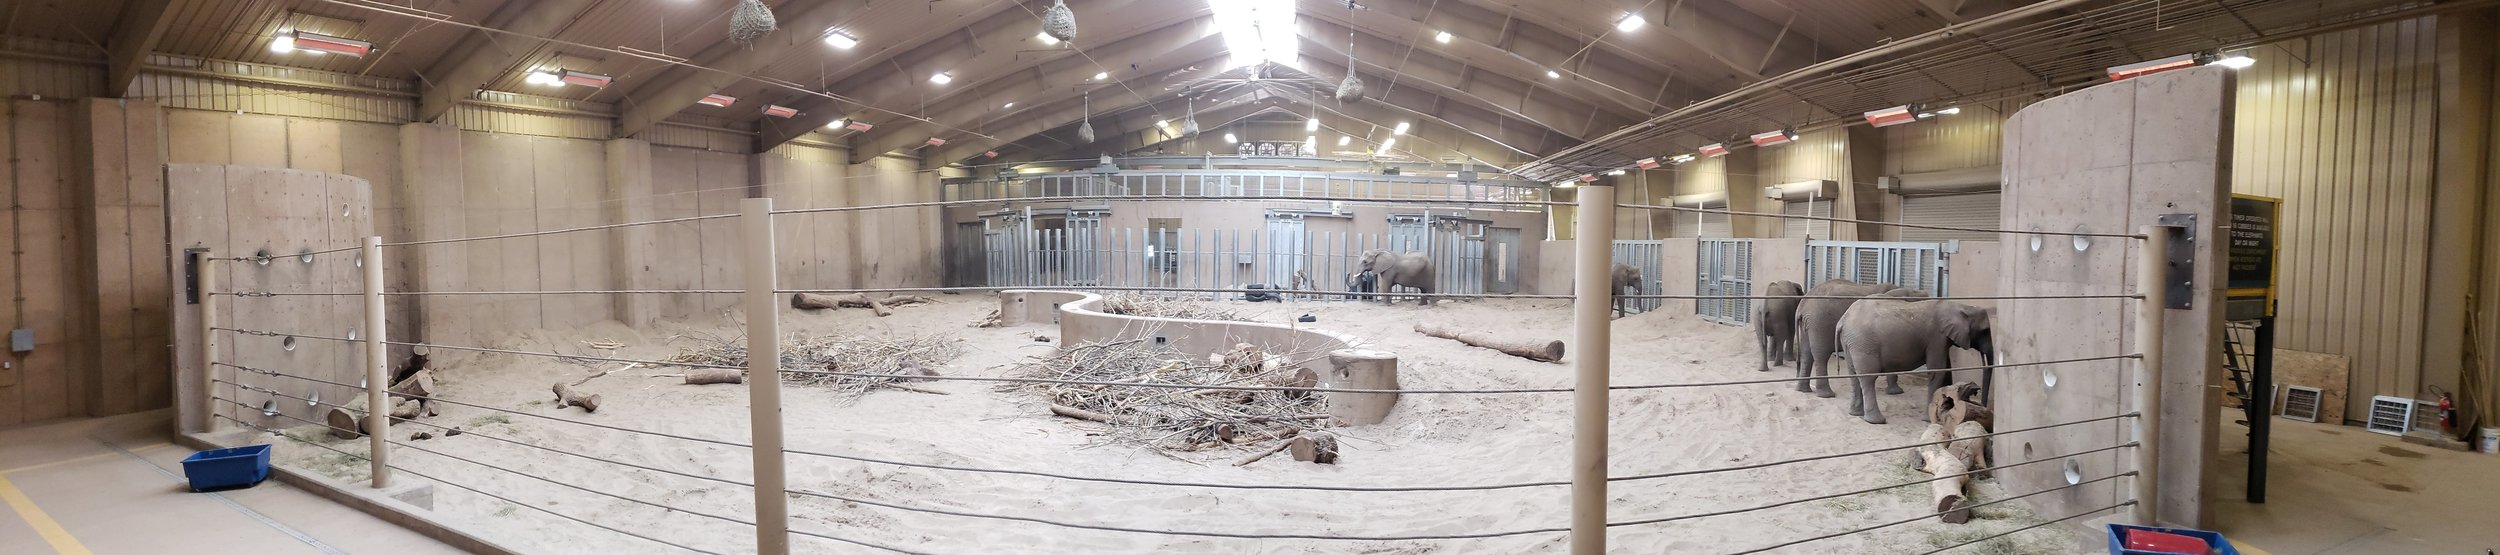 Nice, large, indoor, climate controlled play area for the elephants.